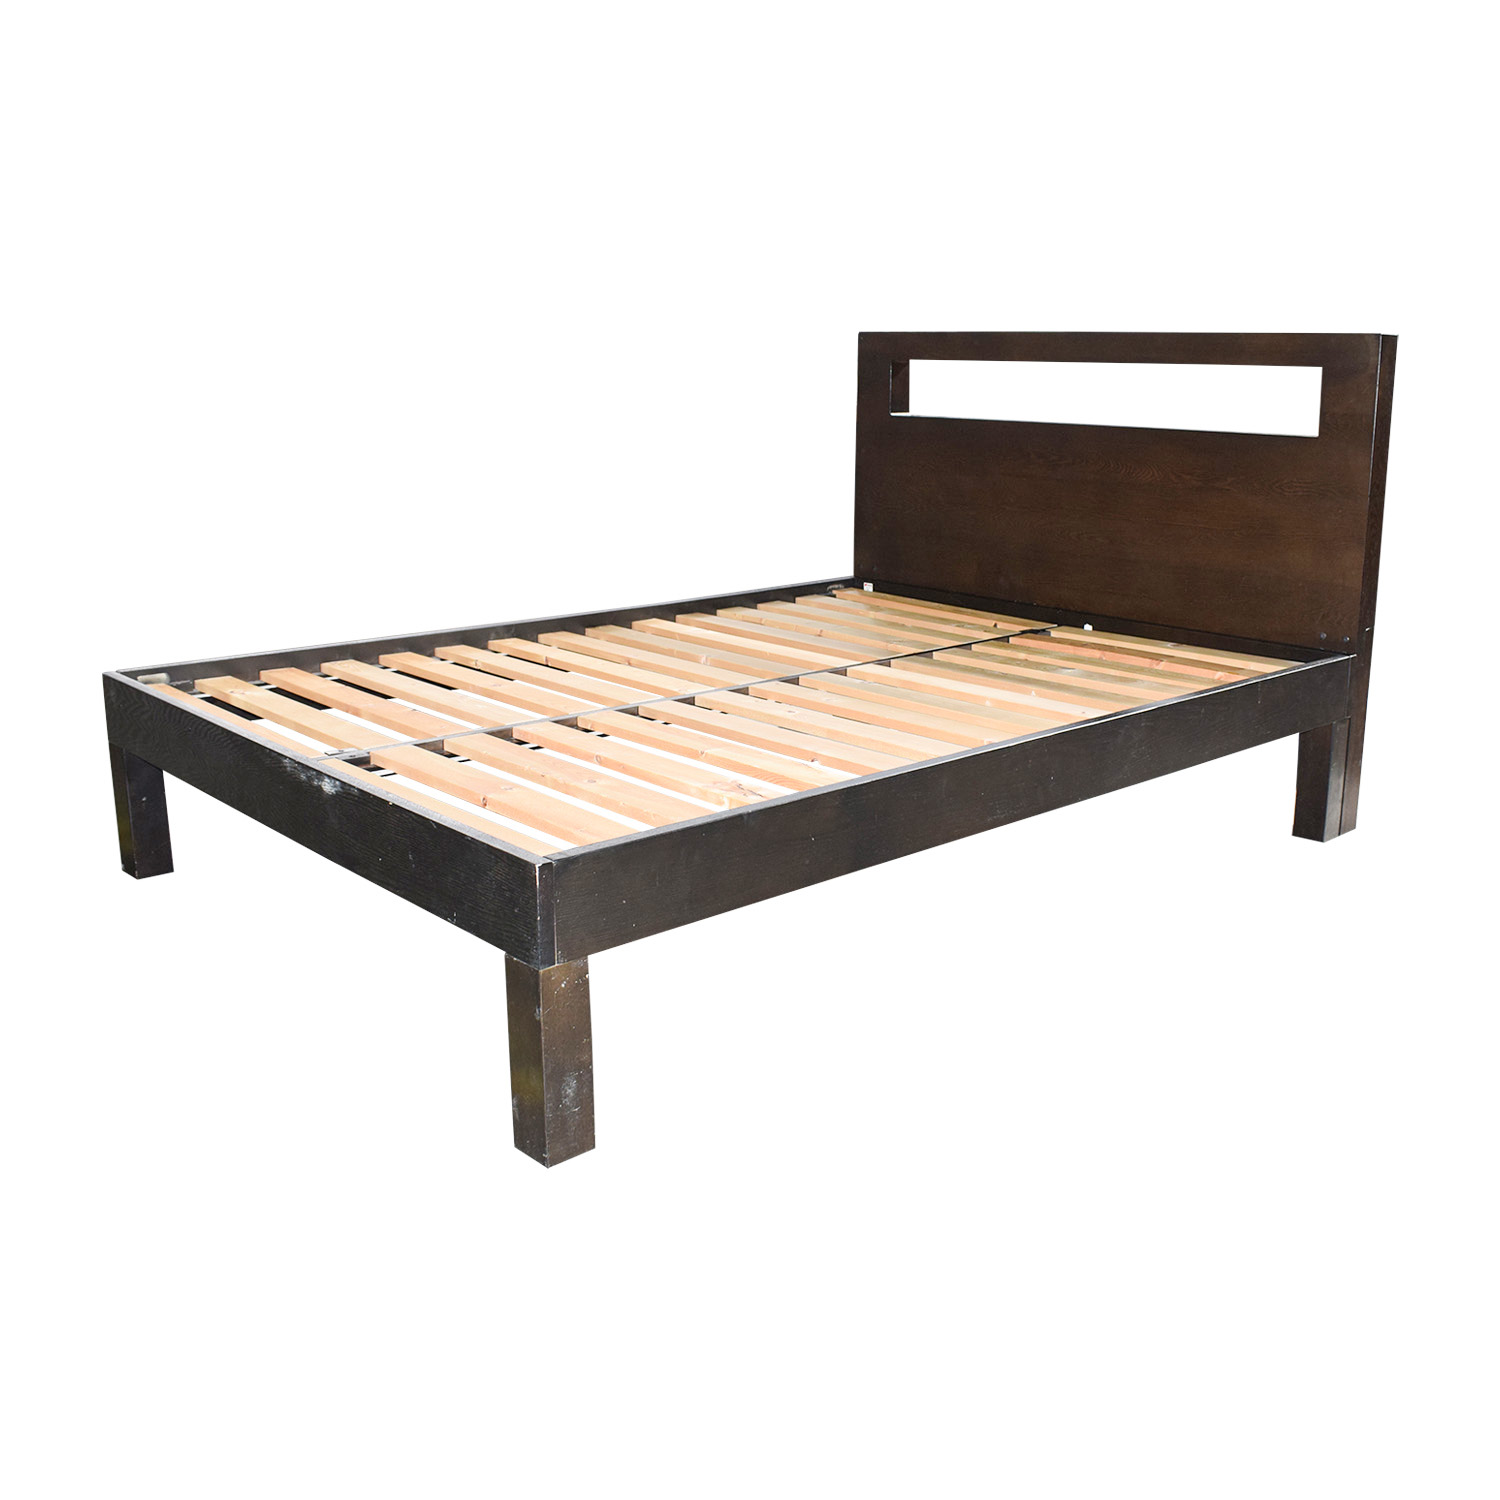 West Elm West Elm Wood Full Bed Frame / Beds